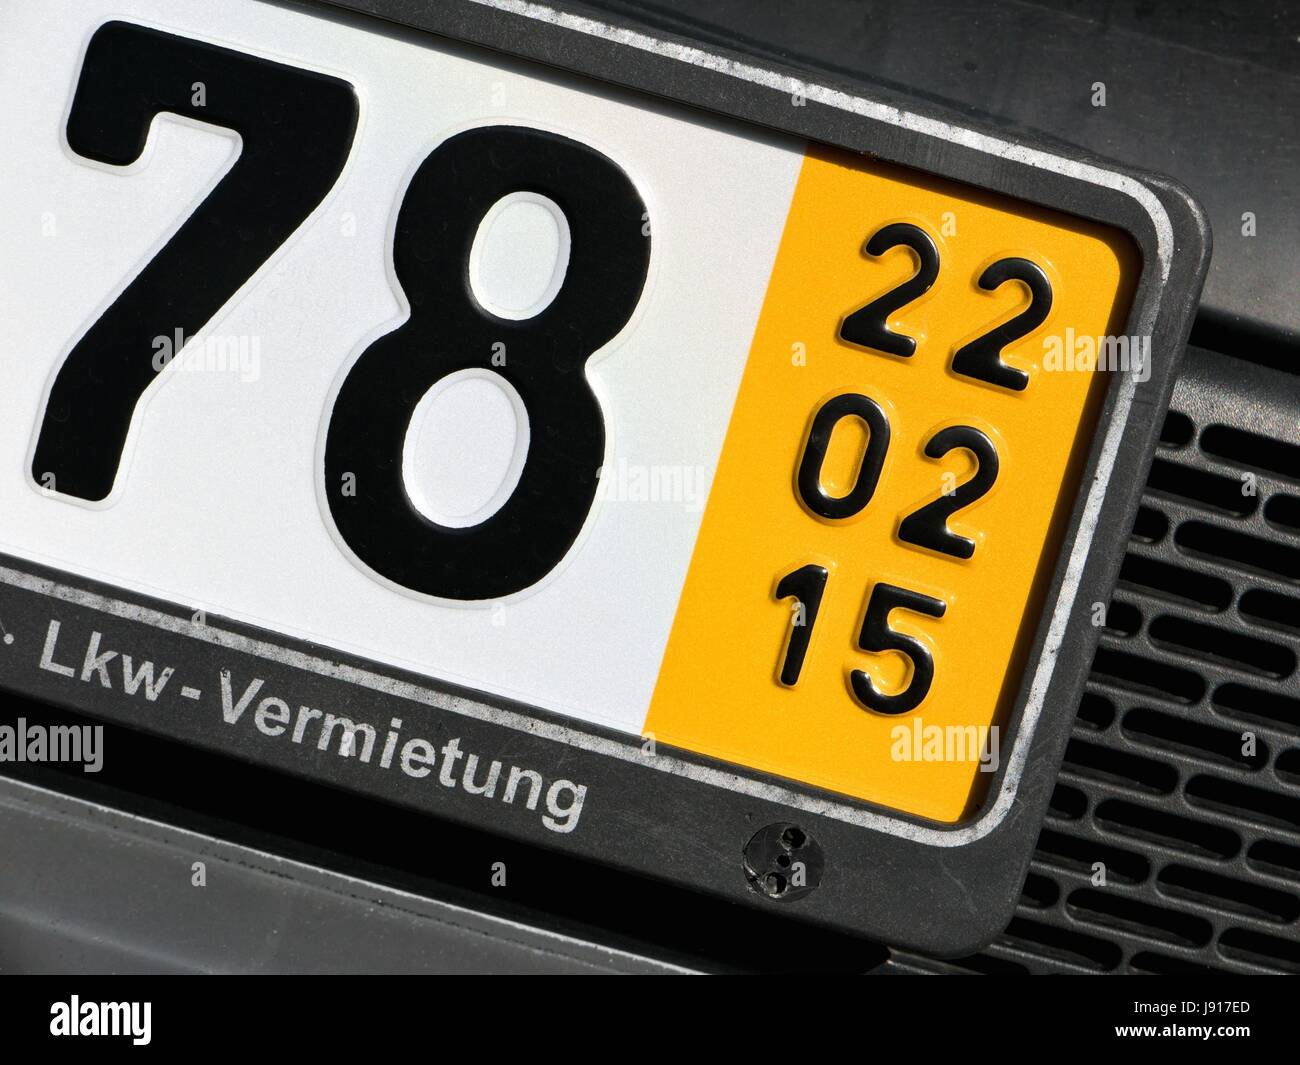 validity date of a German temporary registration plate (in this case February 22, 2015) - Stock Image